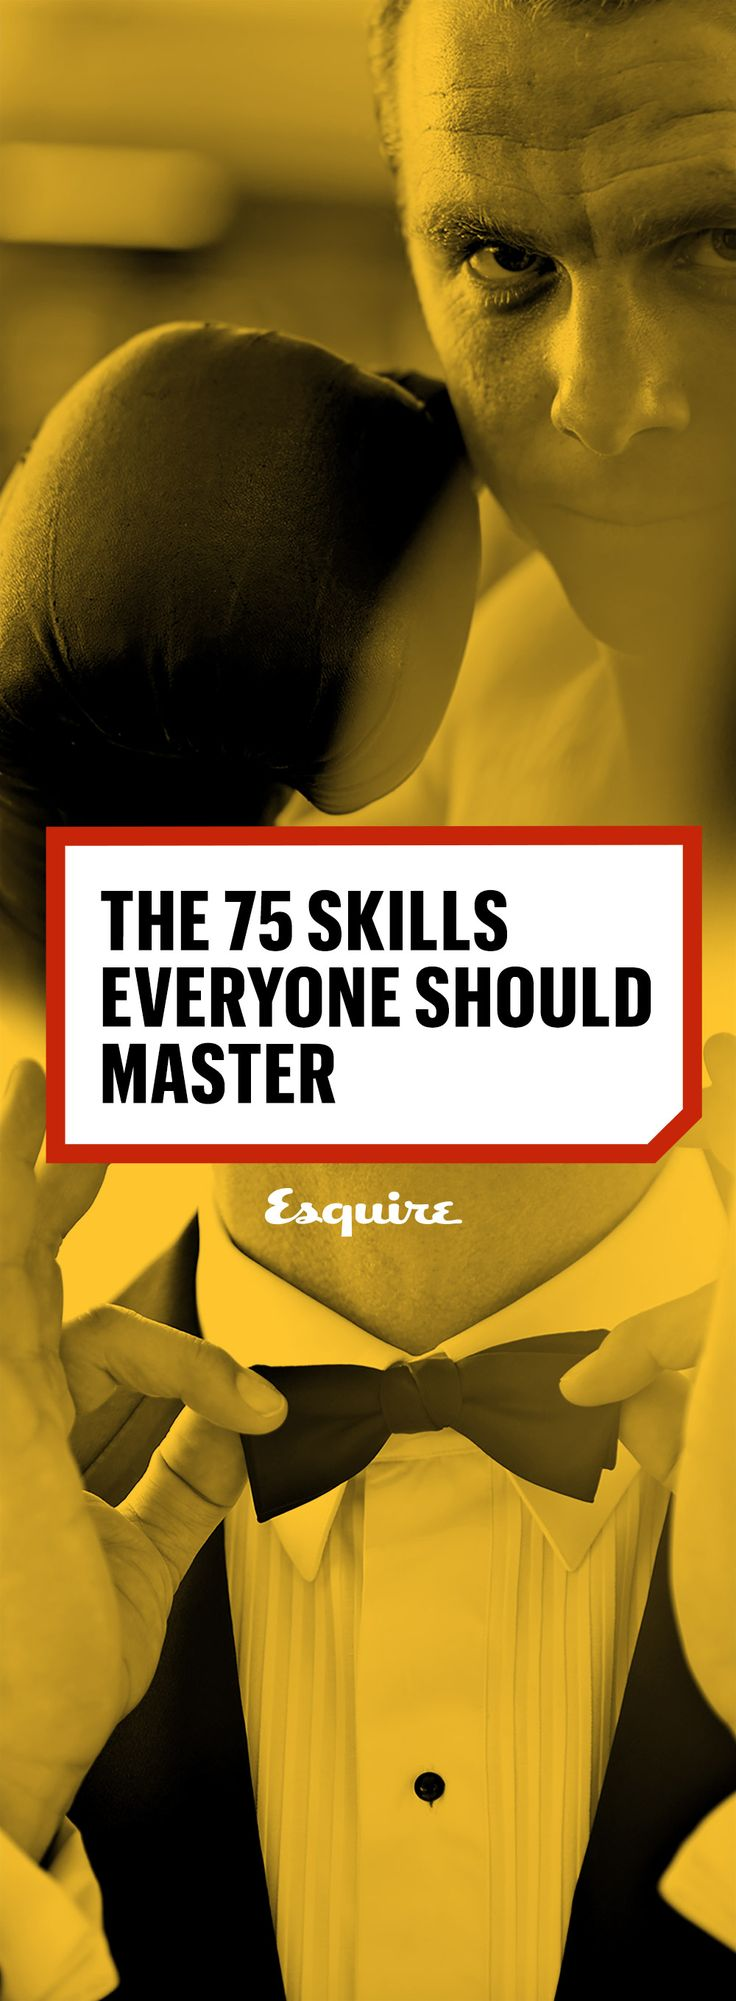 A person can be expert in nothing, but they must be practiced in many things. Skills. You don't have to master them all at once. You simply have to collect and develop a certain number of skills as the years tick by. People count on you to come through. That's why you need these, to start.